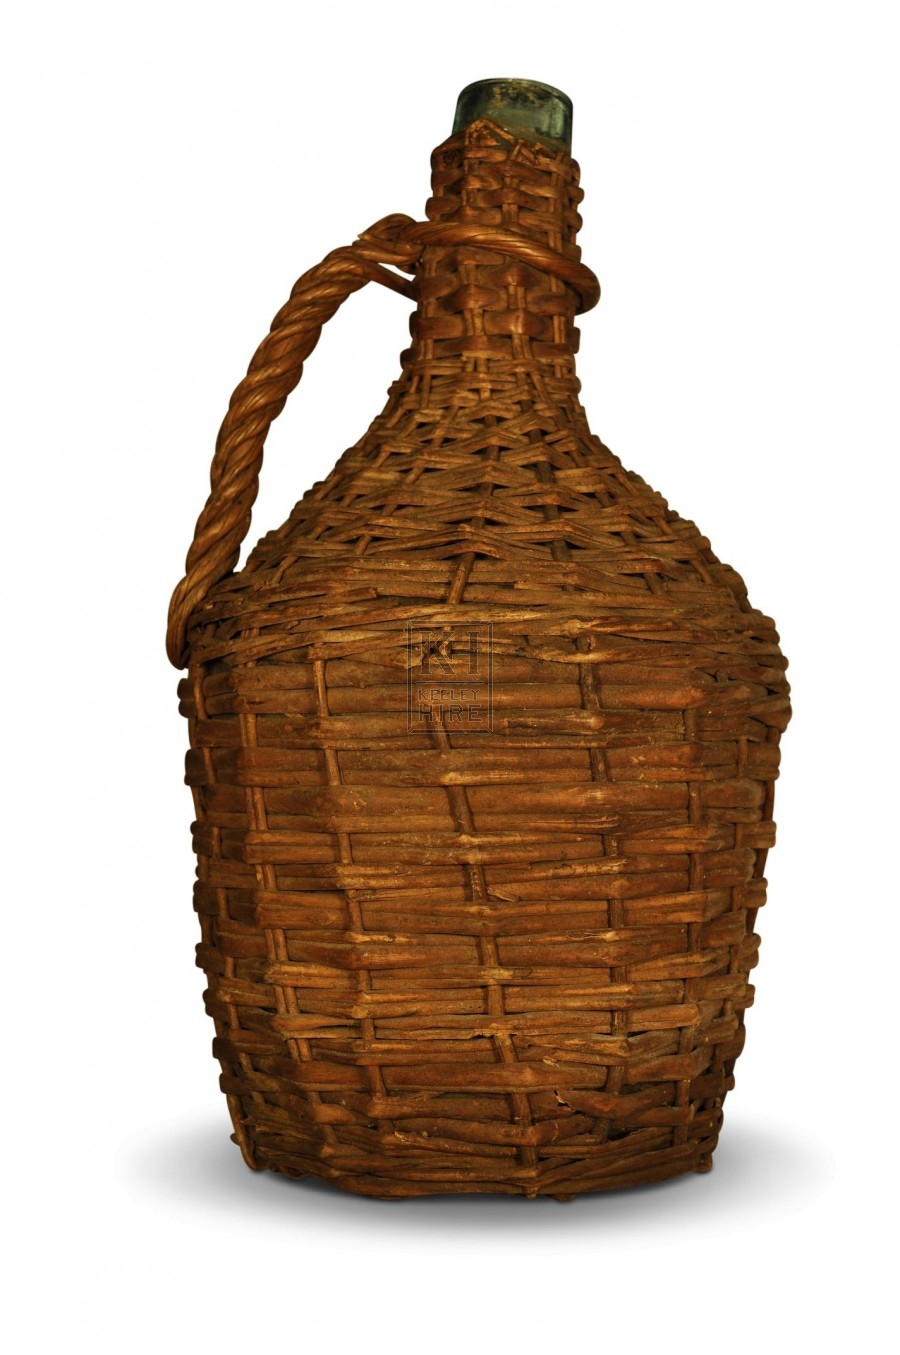 Wicker Wrapped Bottle with Handle #2